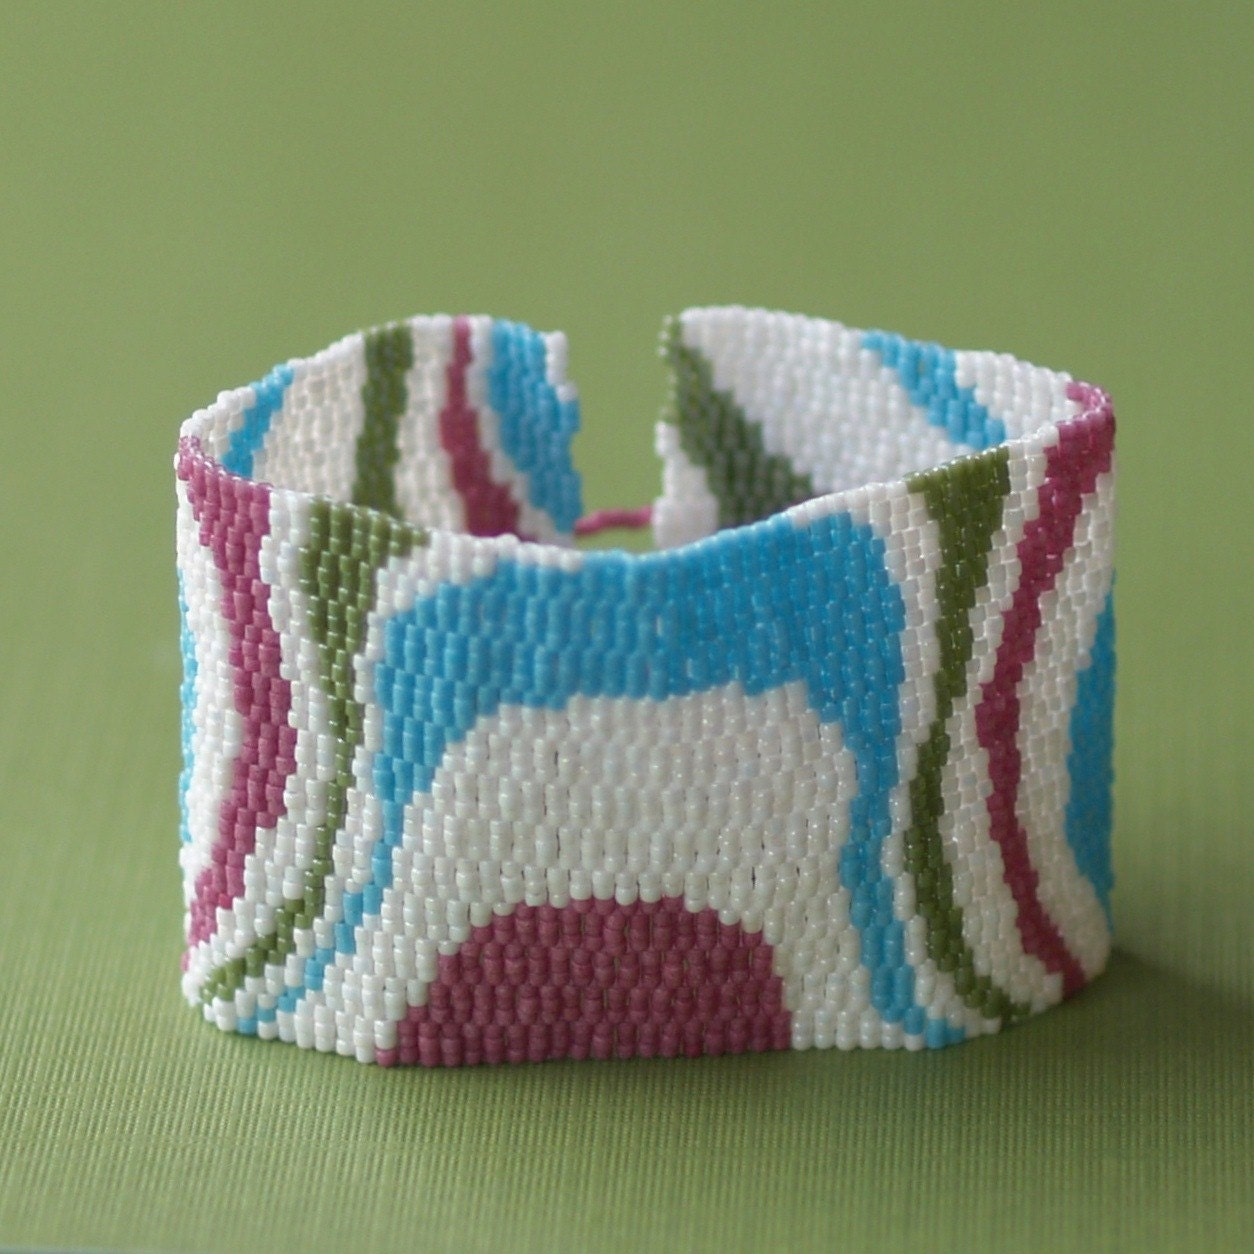 Topography - Peyote Beadwoven Cuff in Cool Retro Colors (3063)